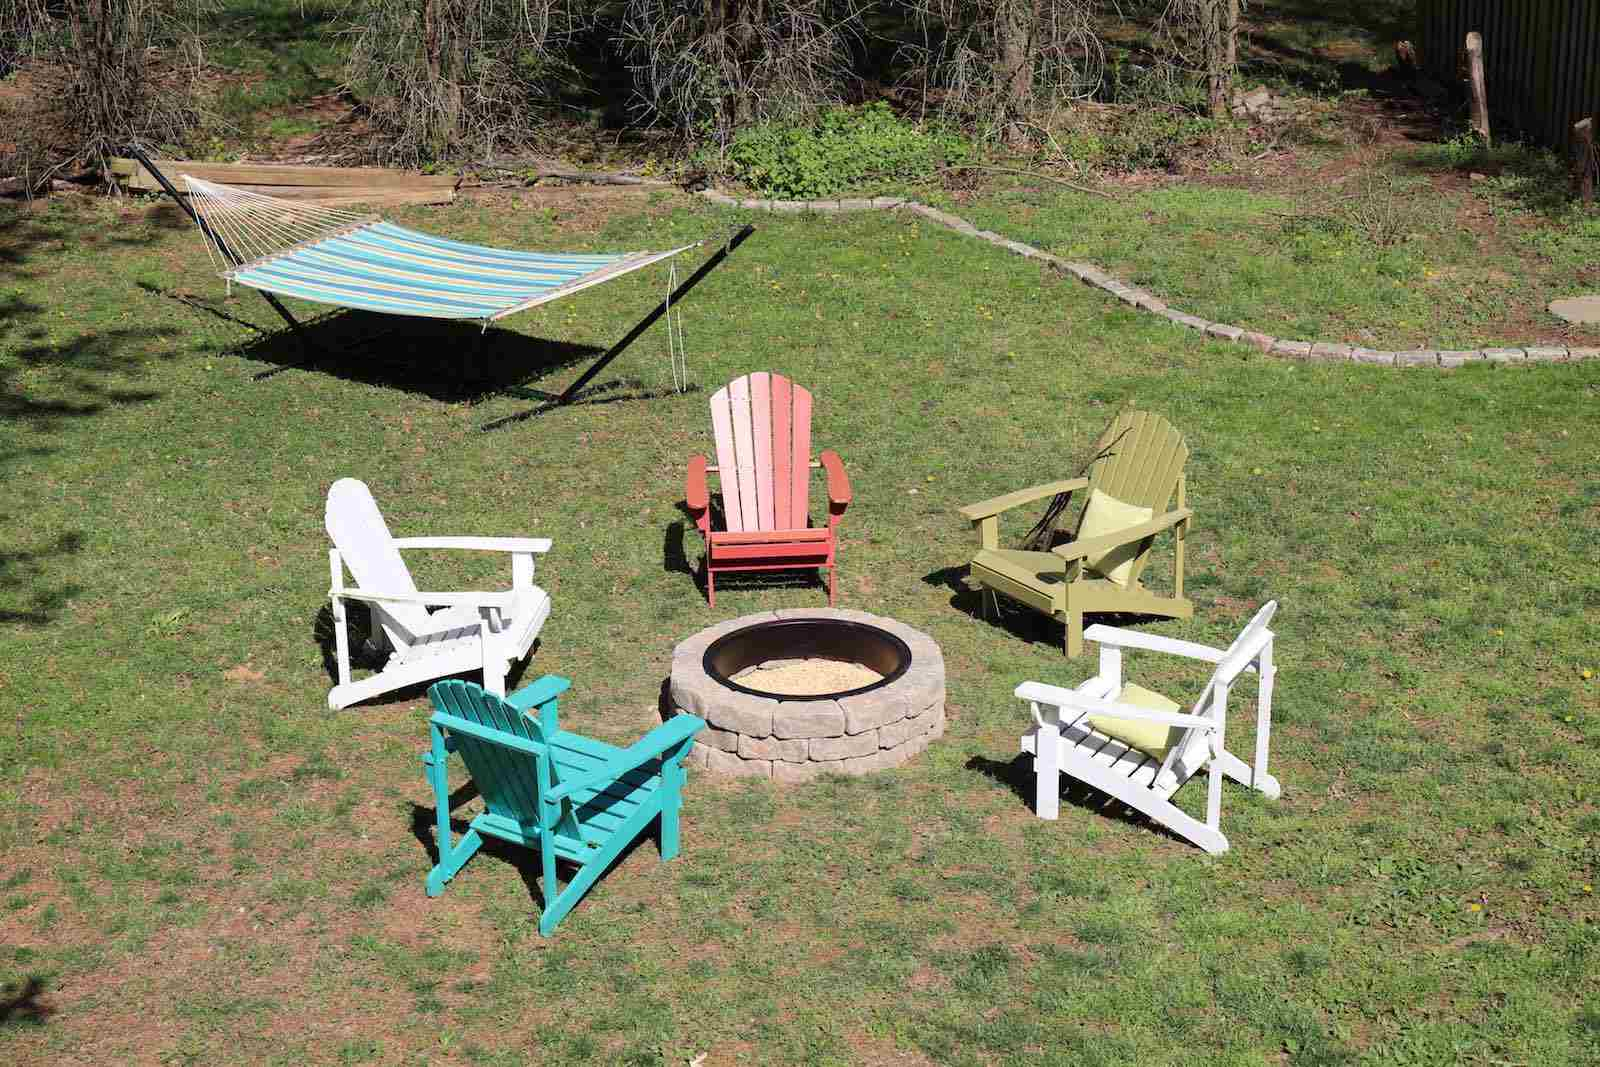 A large backyard with a fire pit, chairs, and hammock